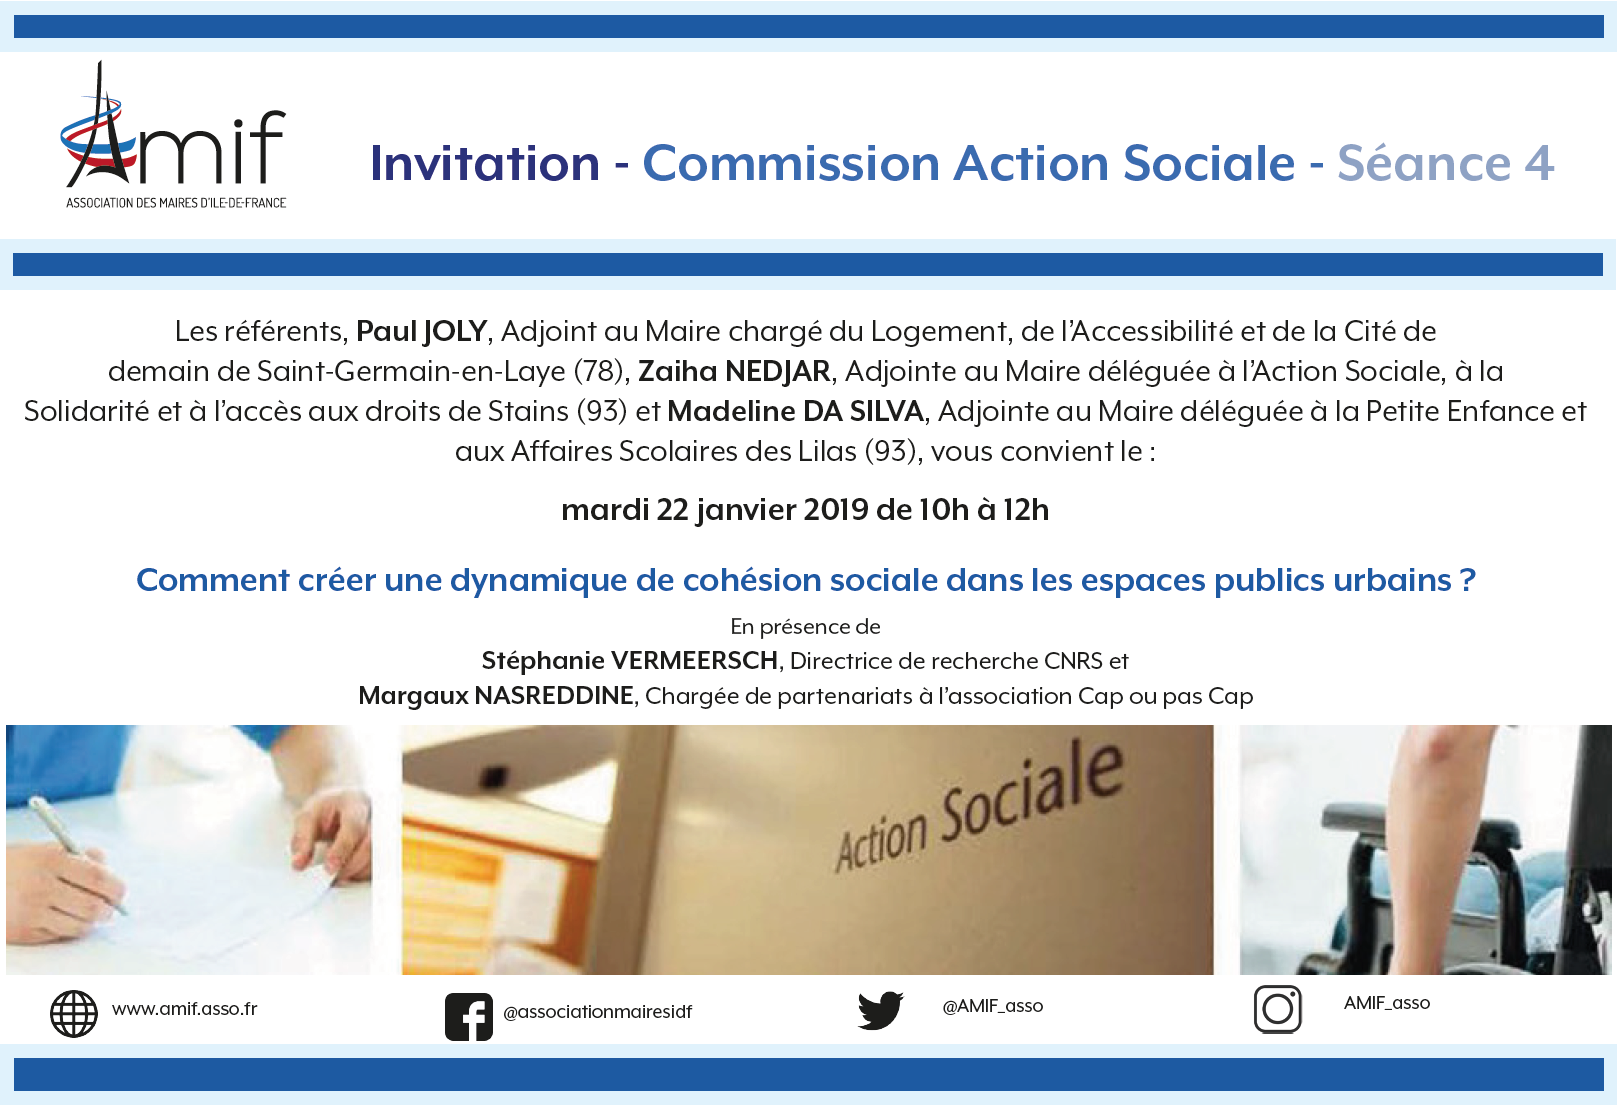 CommissionActionSocialeSeance422janvier2019v2